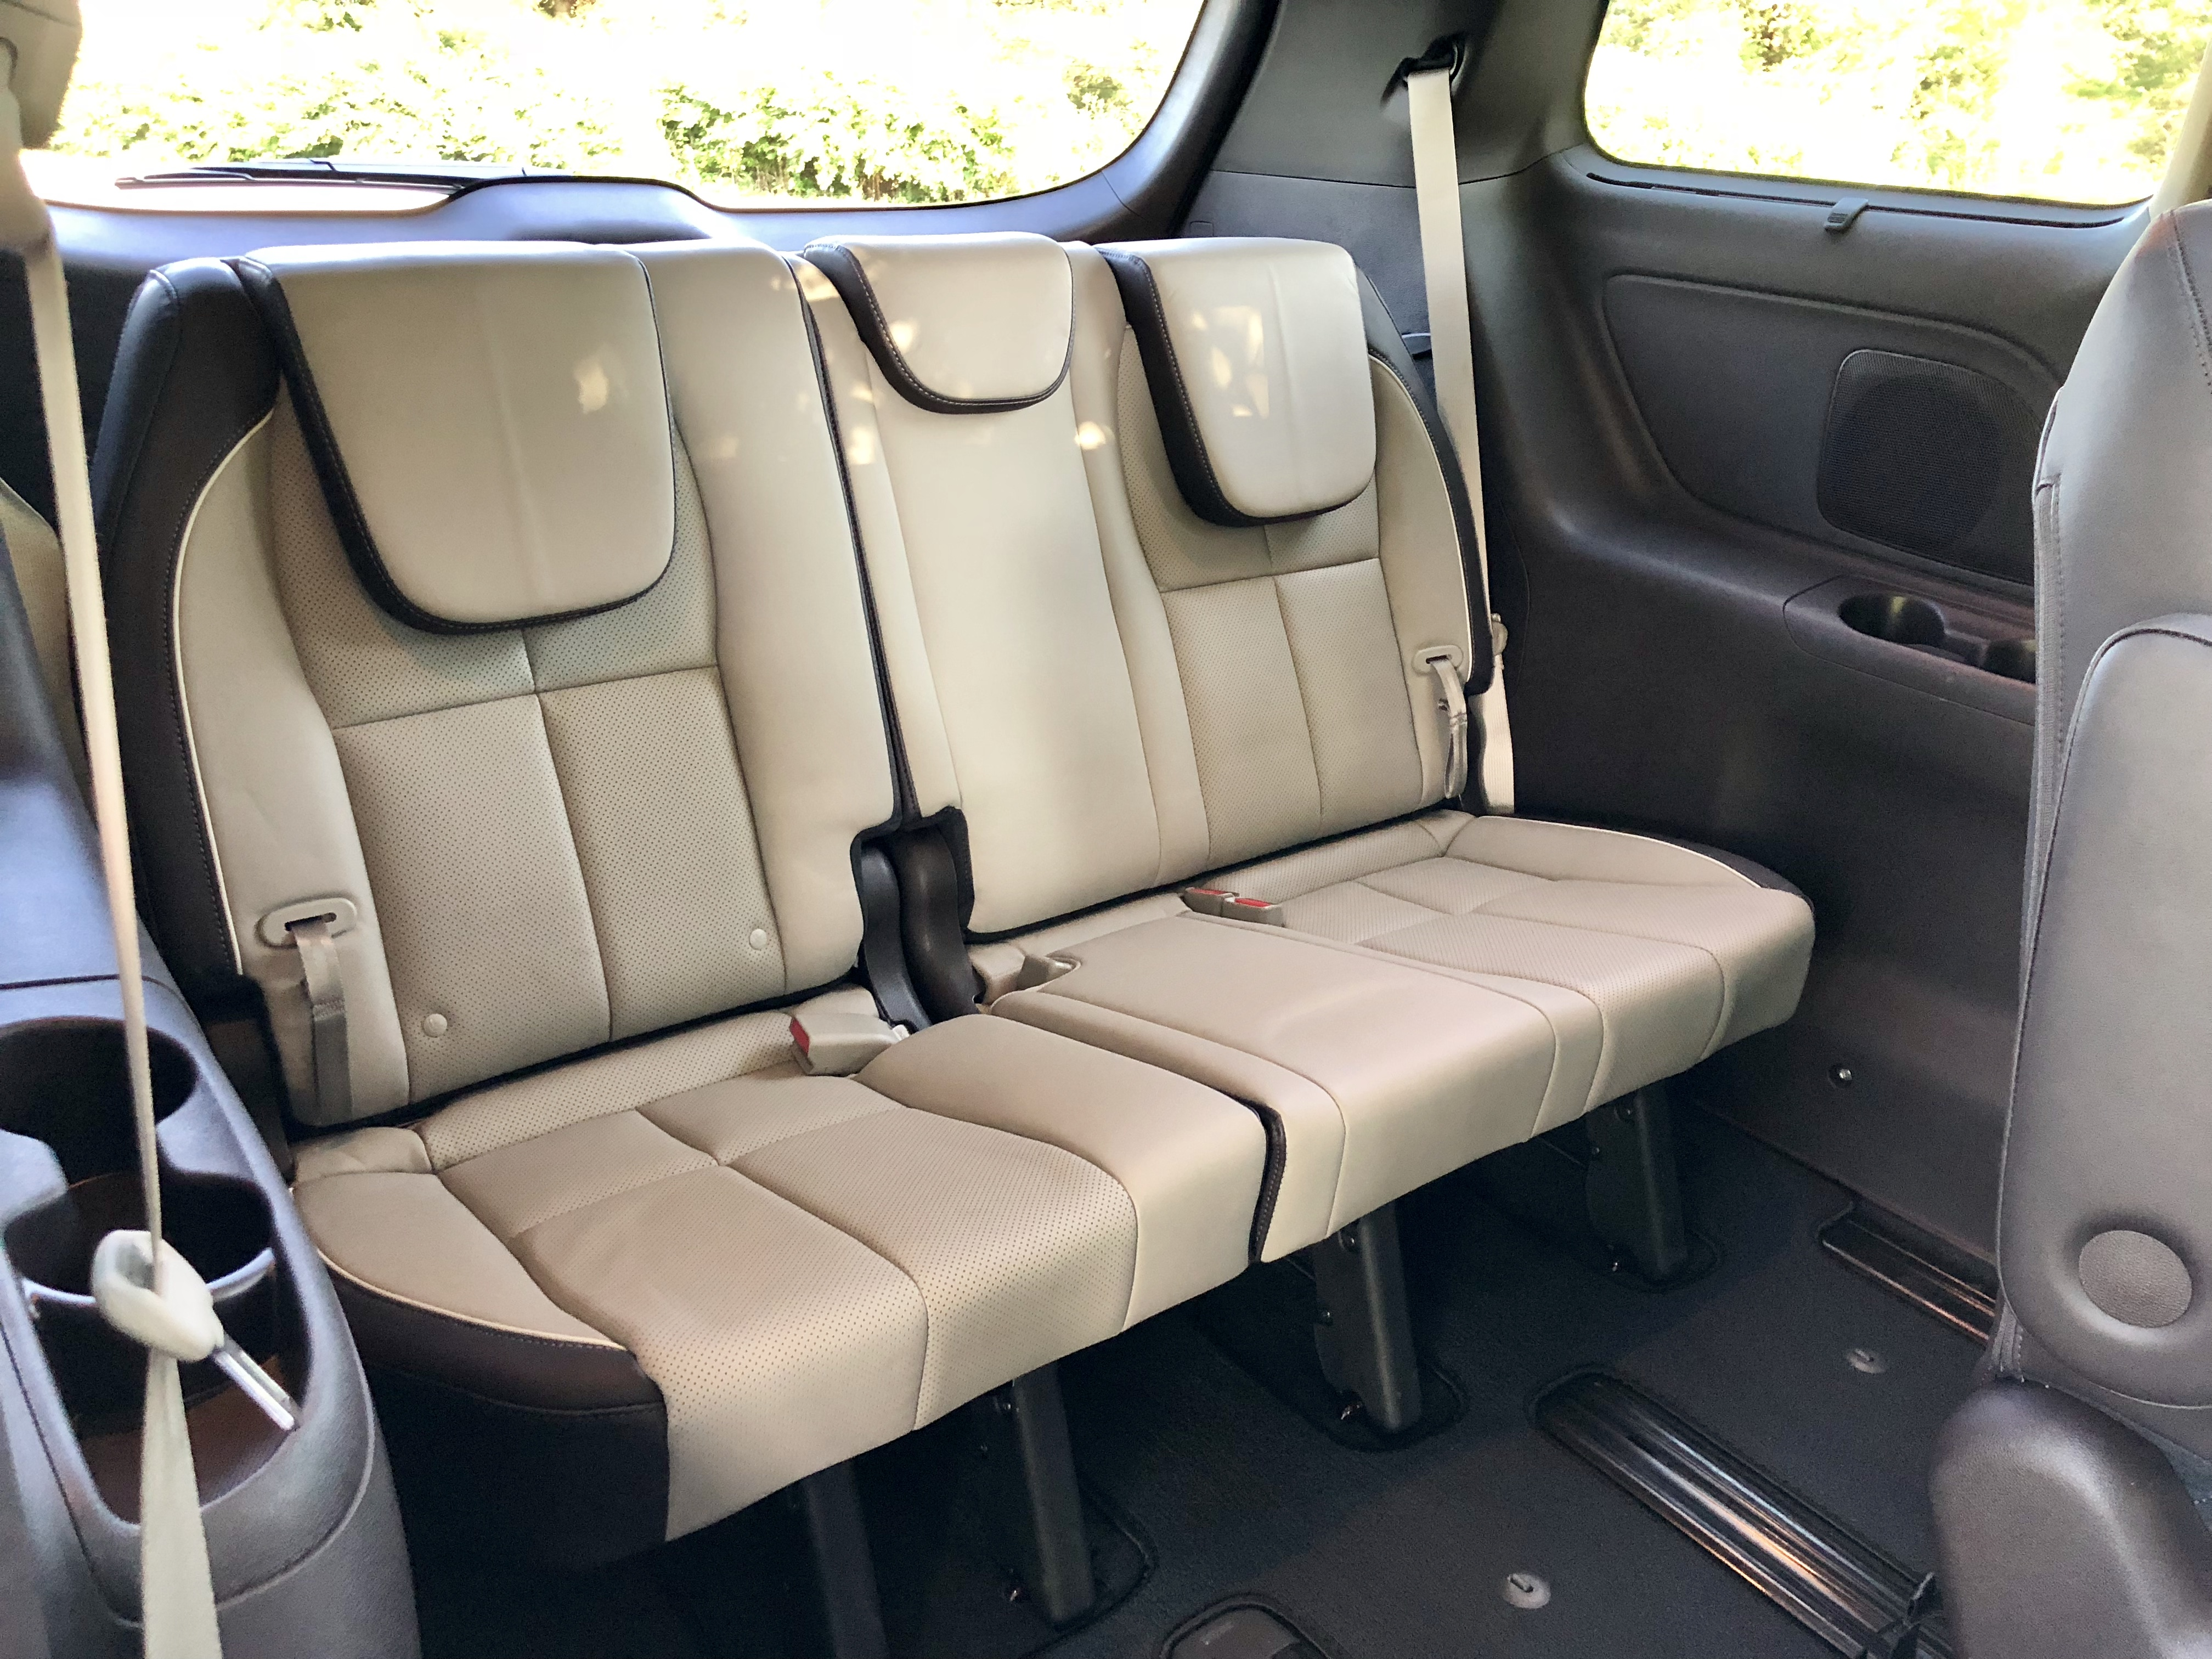 2018 Kia Sedona Review Seats Tech Safety